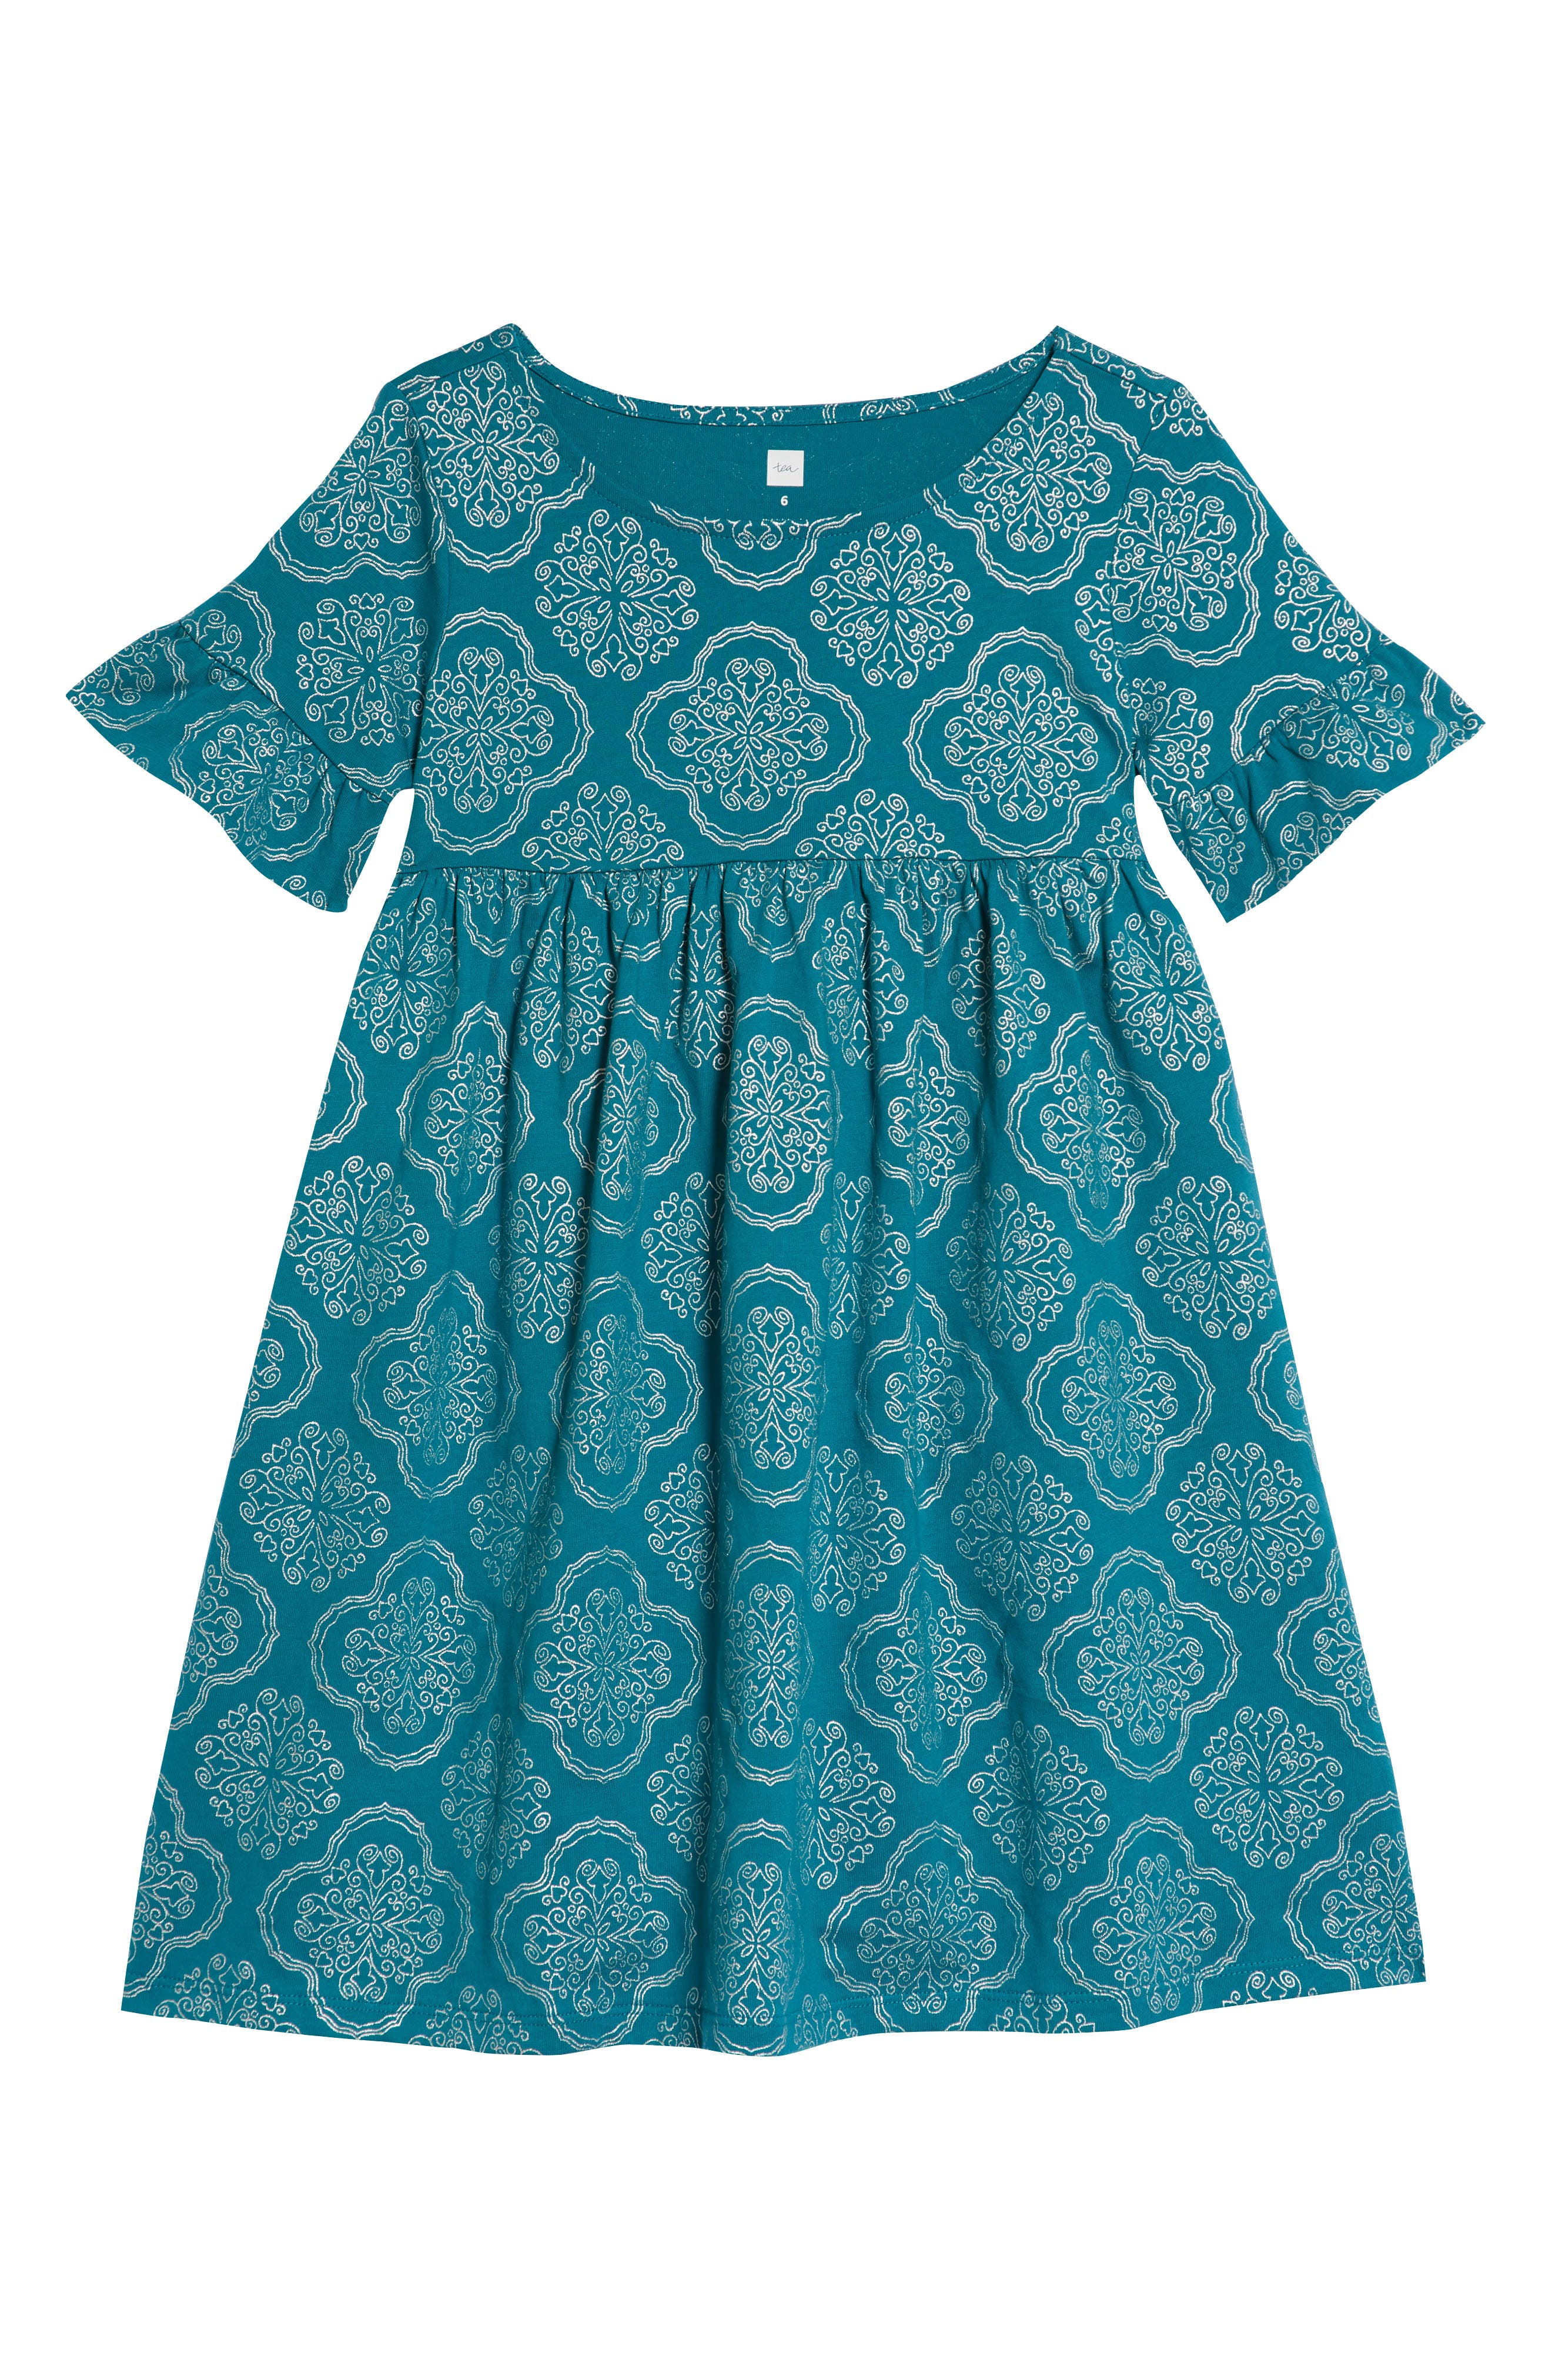 Main Image - Tea Collection Ruffle Sleeve Dress (Toddler Girls, Little Girls & Big Girls)